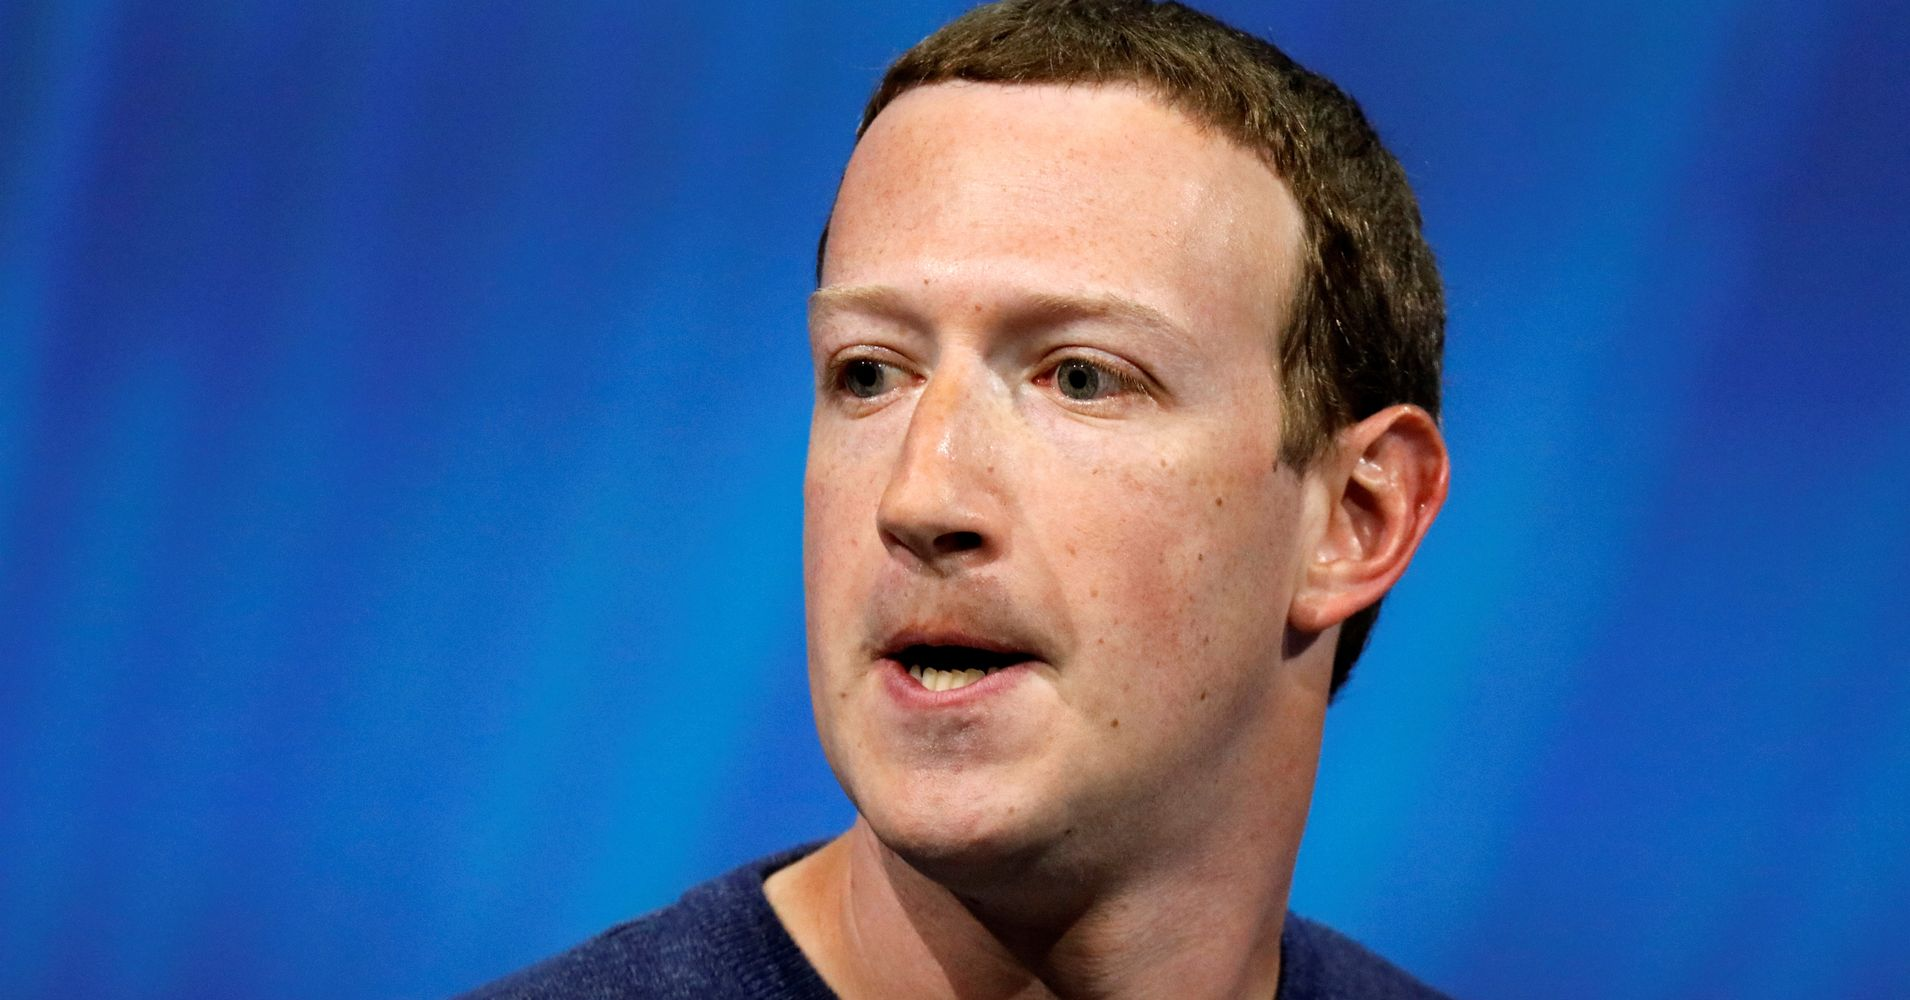 Facebook Admits To New Security Breach, 50 Million People At Risk